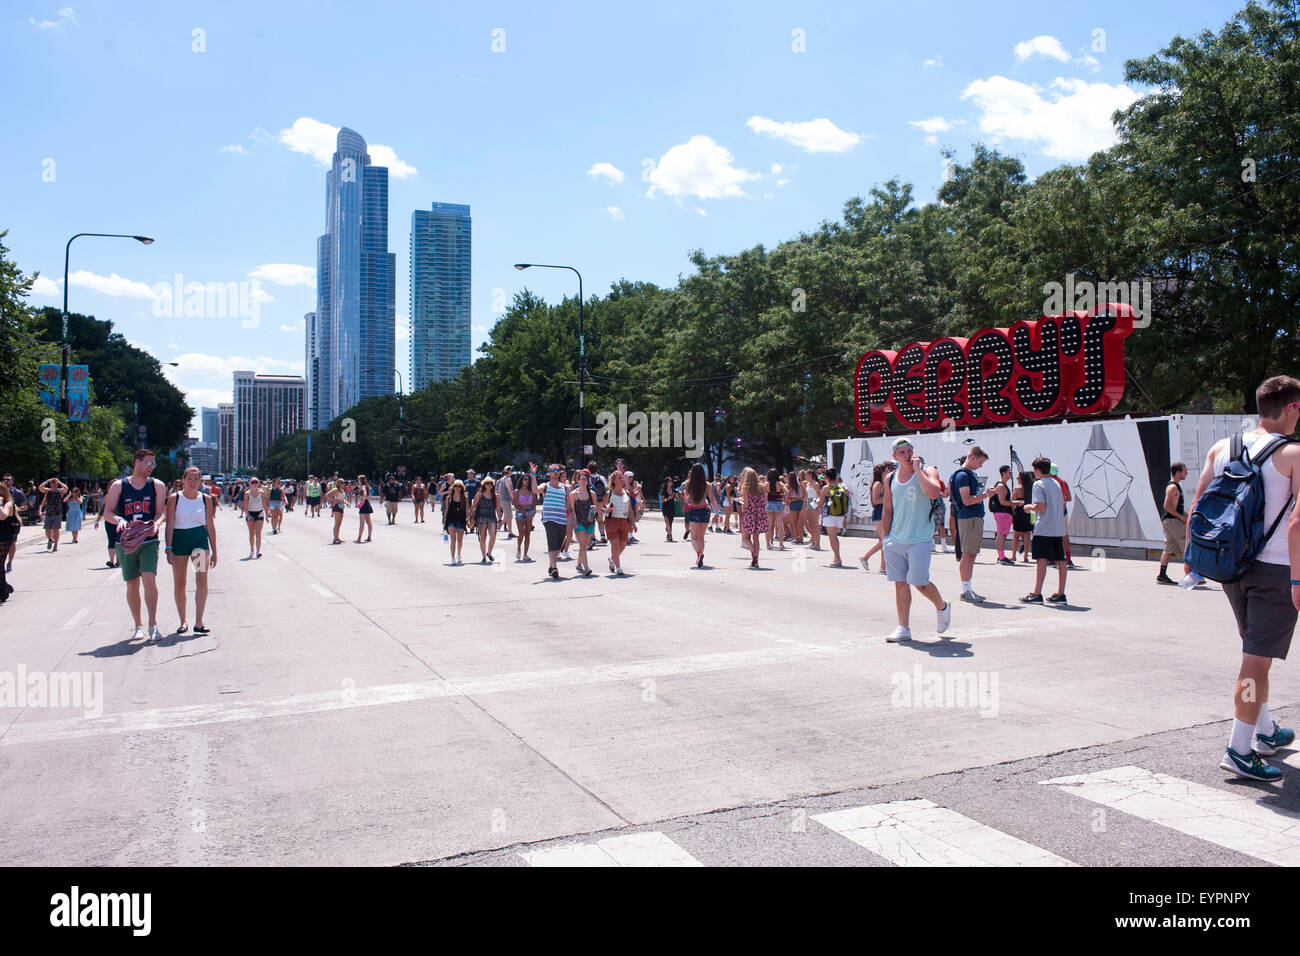 Grant Park. 01st Aug, 2015. August 01, 2015. - Lollapalooza Festival 2015 at Grant Park. Chicago, USA/picture alliance - Stock Image